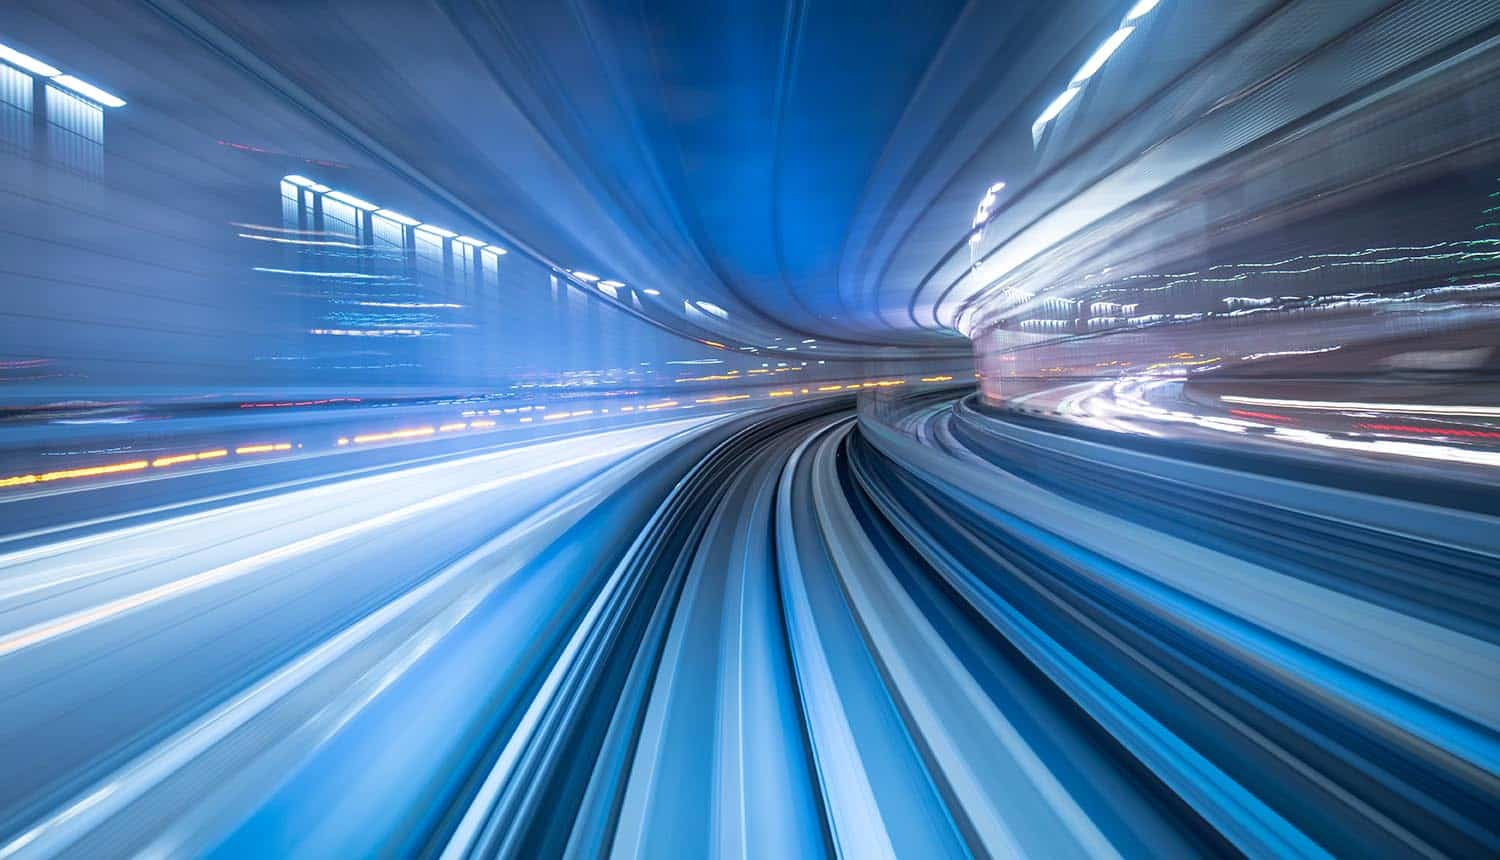 Image of speeding through a tunnel signifying the passage of time and what's changed and what hasn't in addressing privacy